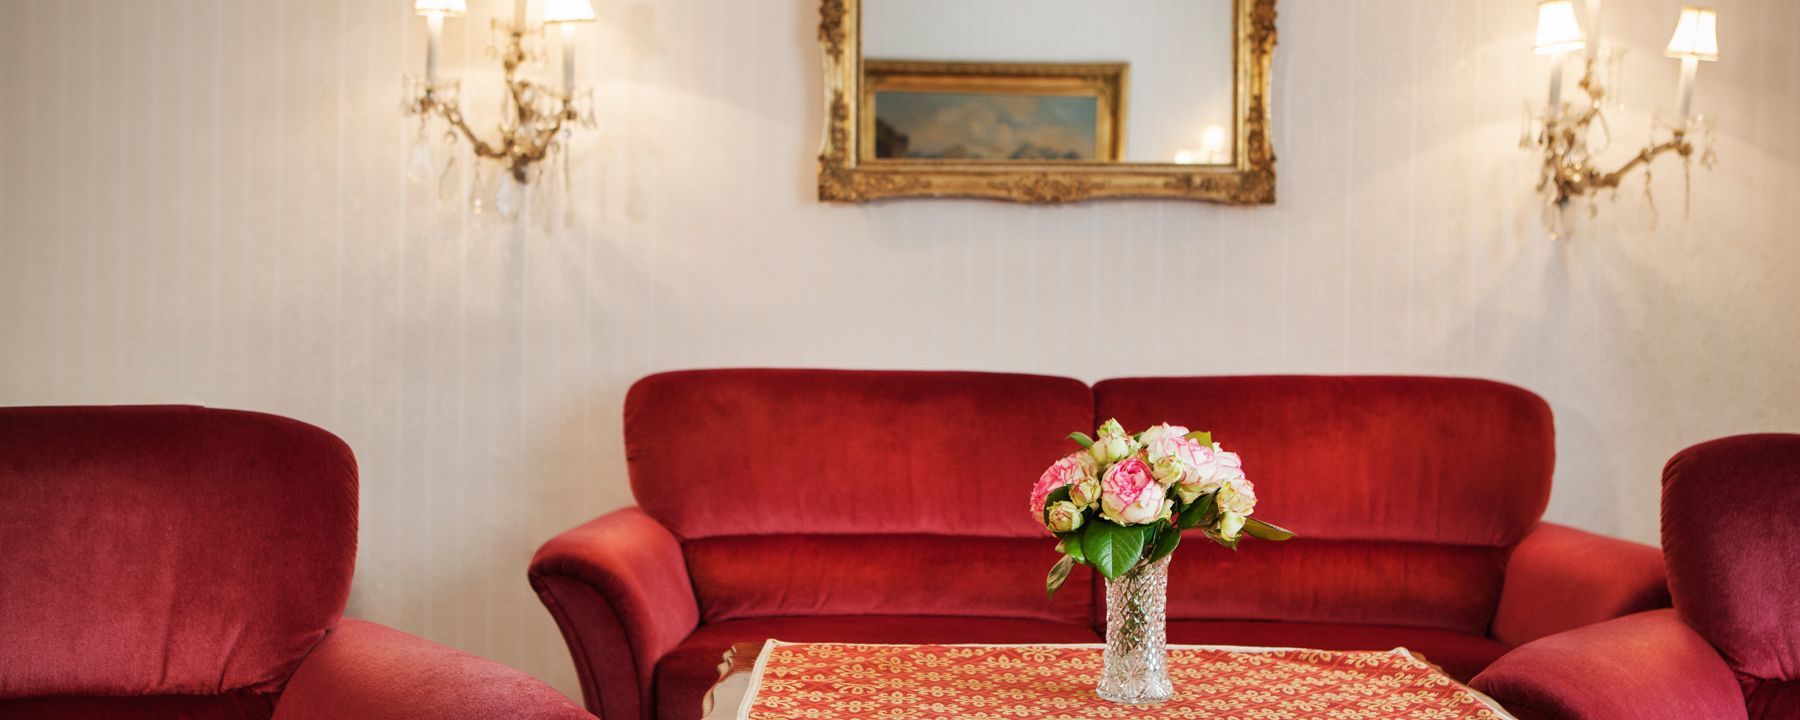 A stylish ambiance welcomes you in Vienna